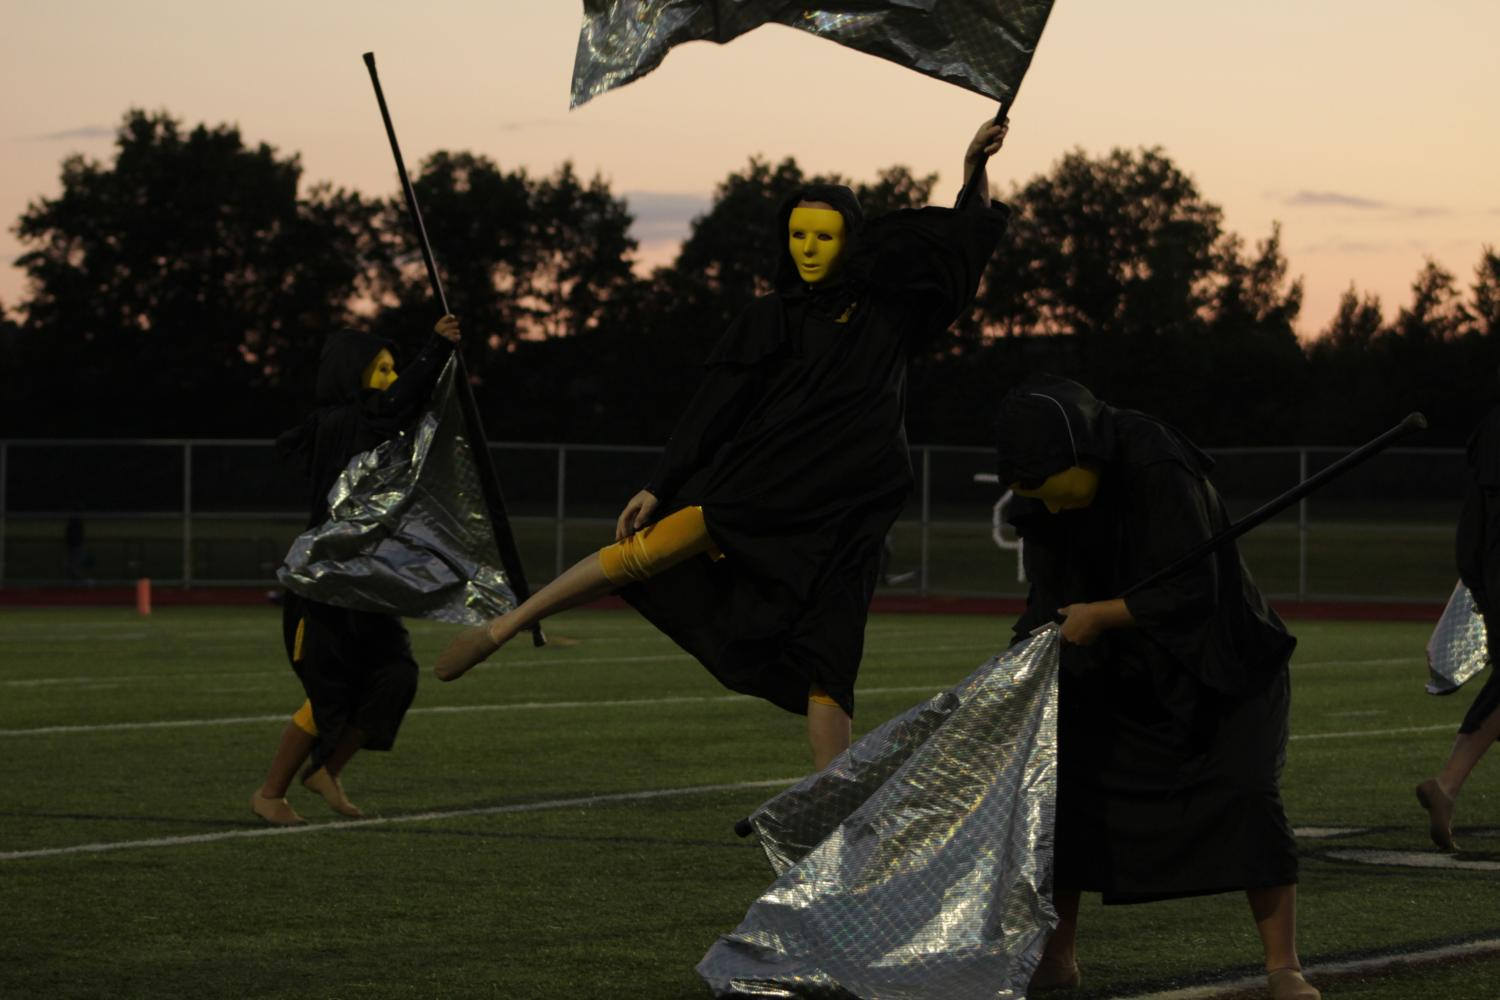 Color guard changes costumes mid-performance.